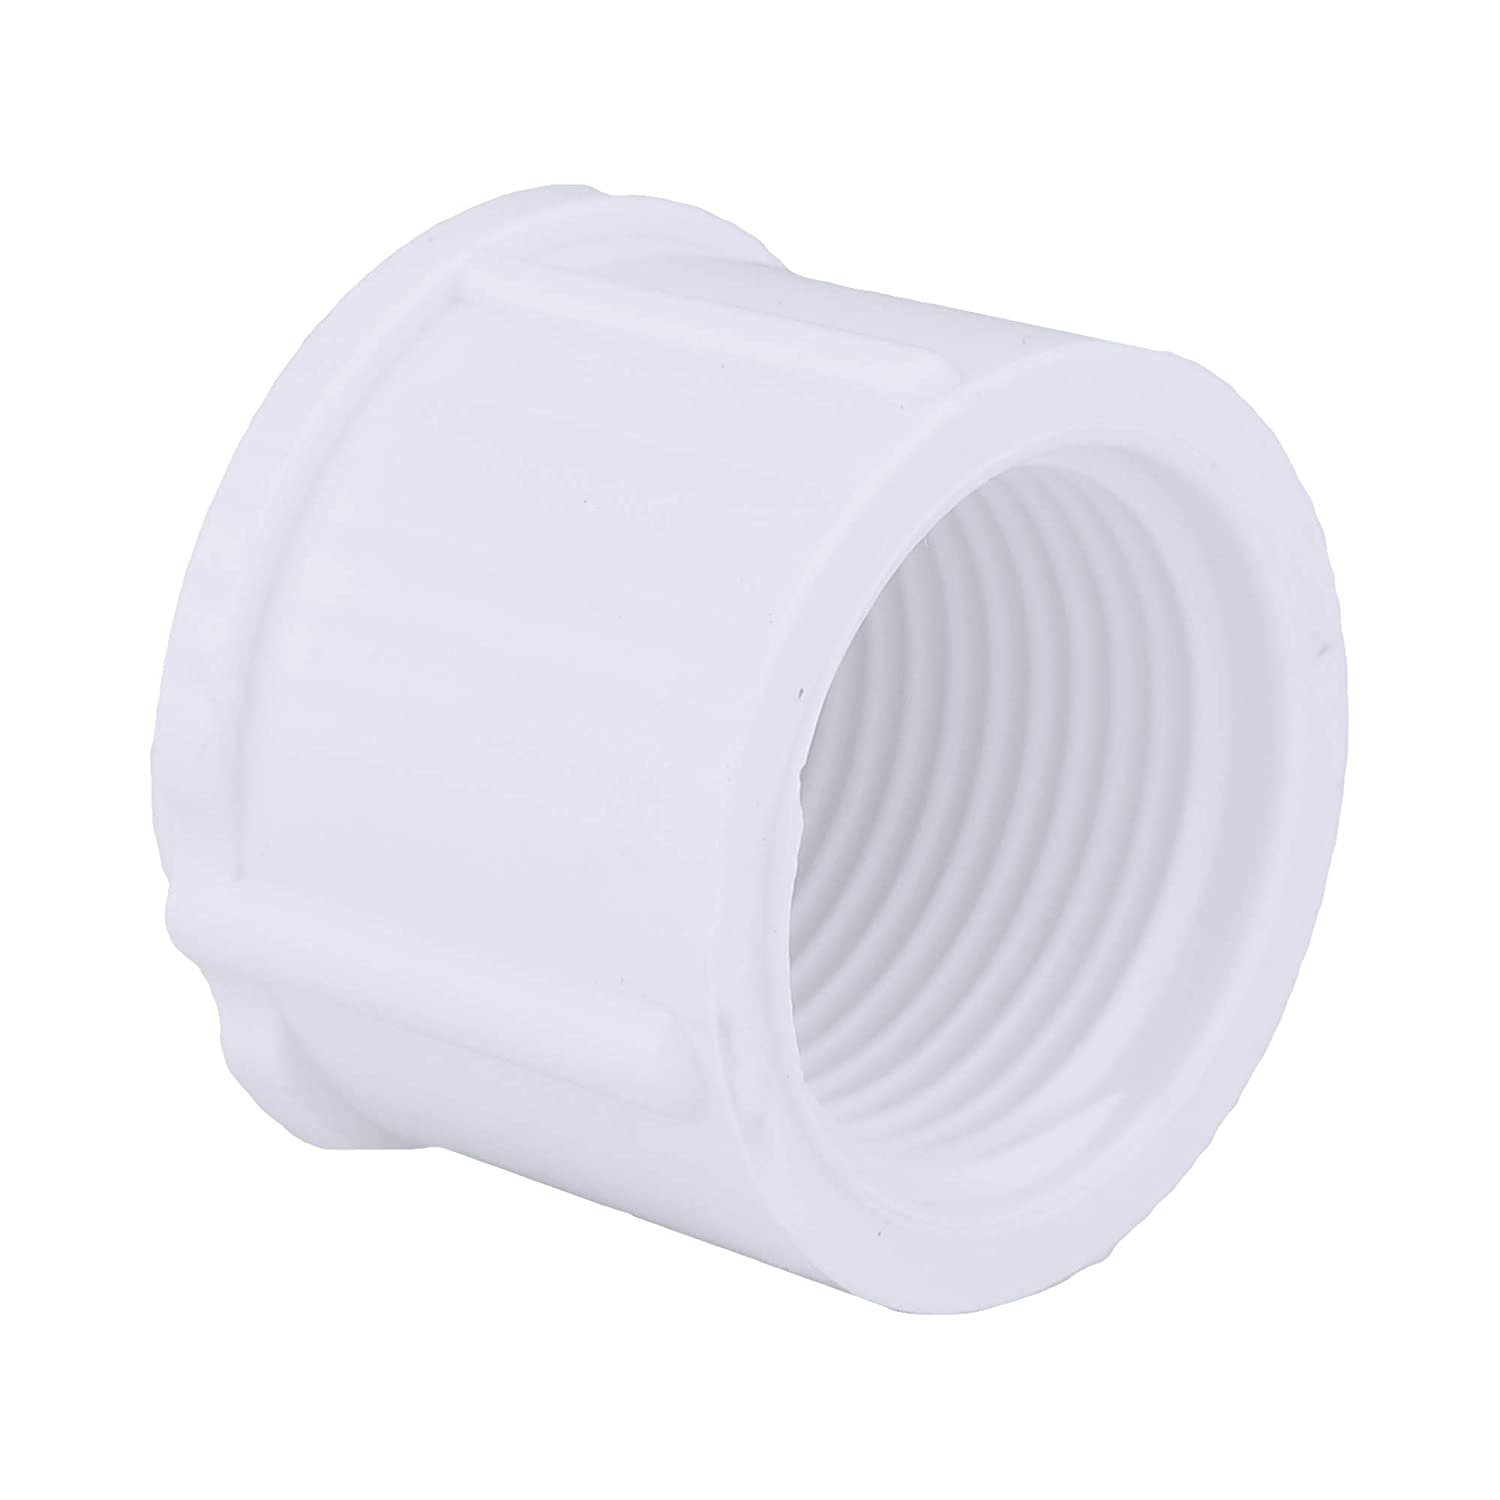 Easy to Install High Tensile and Sound Deadening for Home or Industrial Use Female Pipe Thread Schedule 40 PVC Durable Charlotte Pipe 1 Cap Bushing Pipe Fitting Single Unit